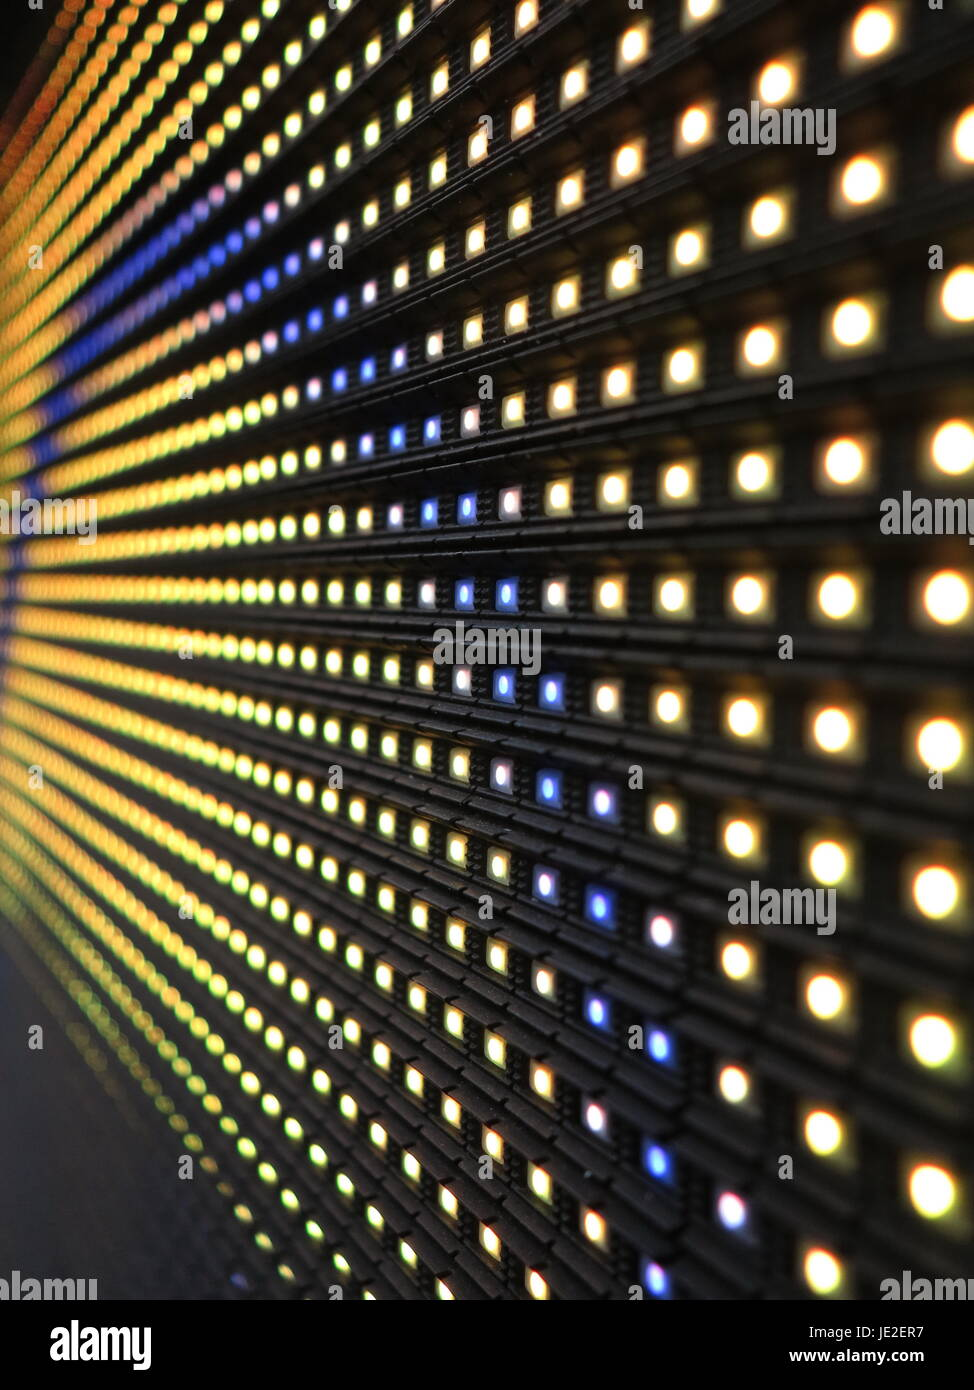 Wand Led Rgb Led Wand Stock Photo 146343659 Alamy